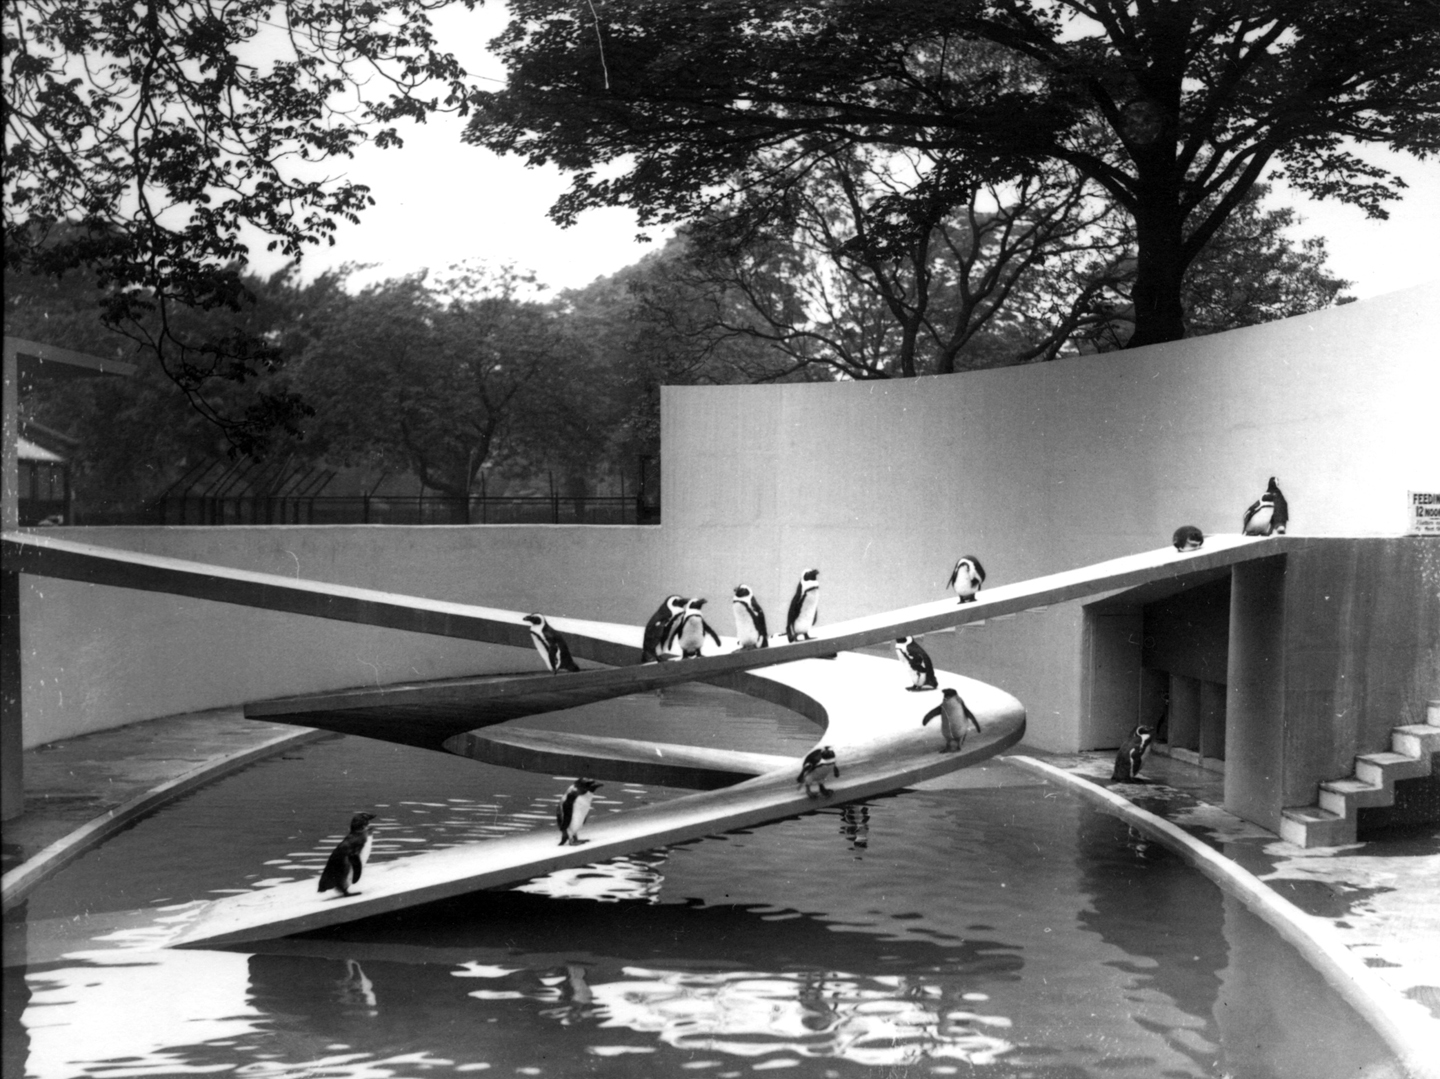 FW Bond / ZSL, Berthold Lubetkin Penguin Pool at ZSL London Zoo, 1935. © Zoological Society of London. Courtesy: Zoological Society of London